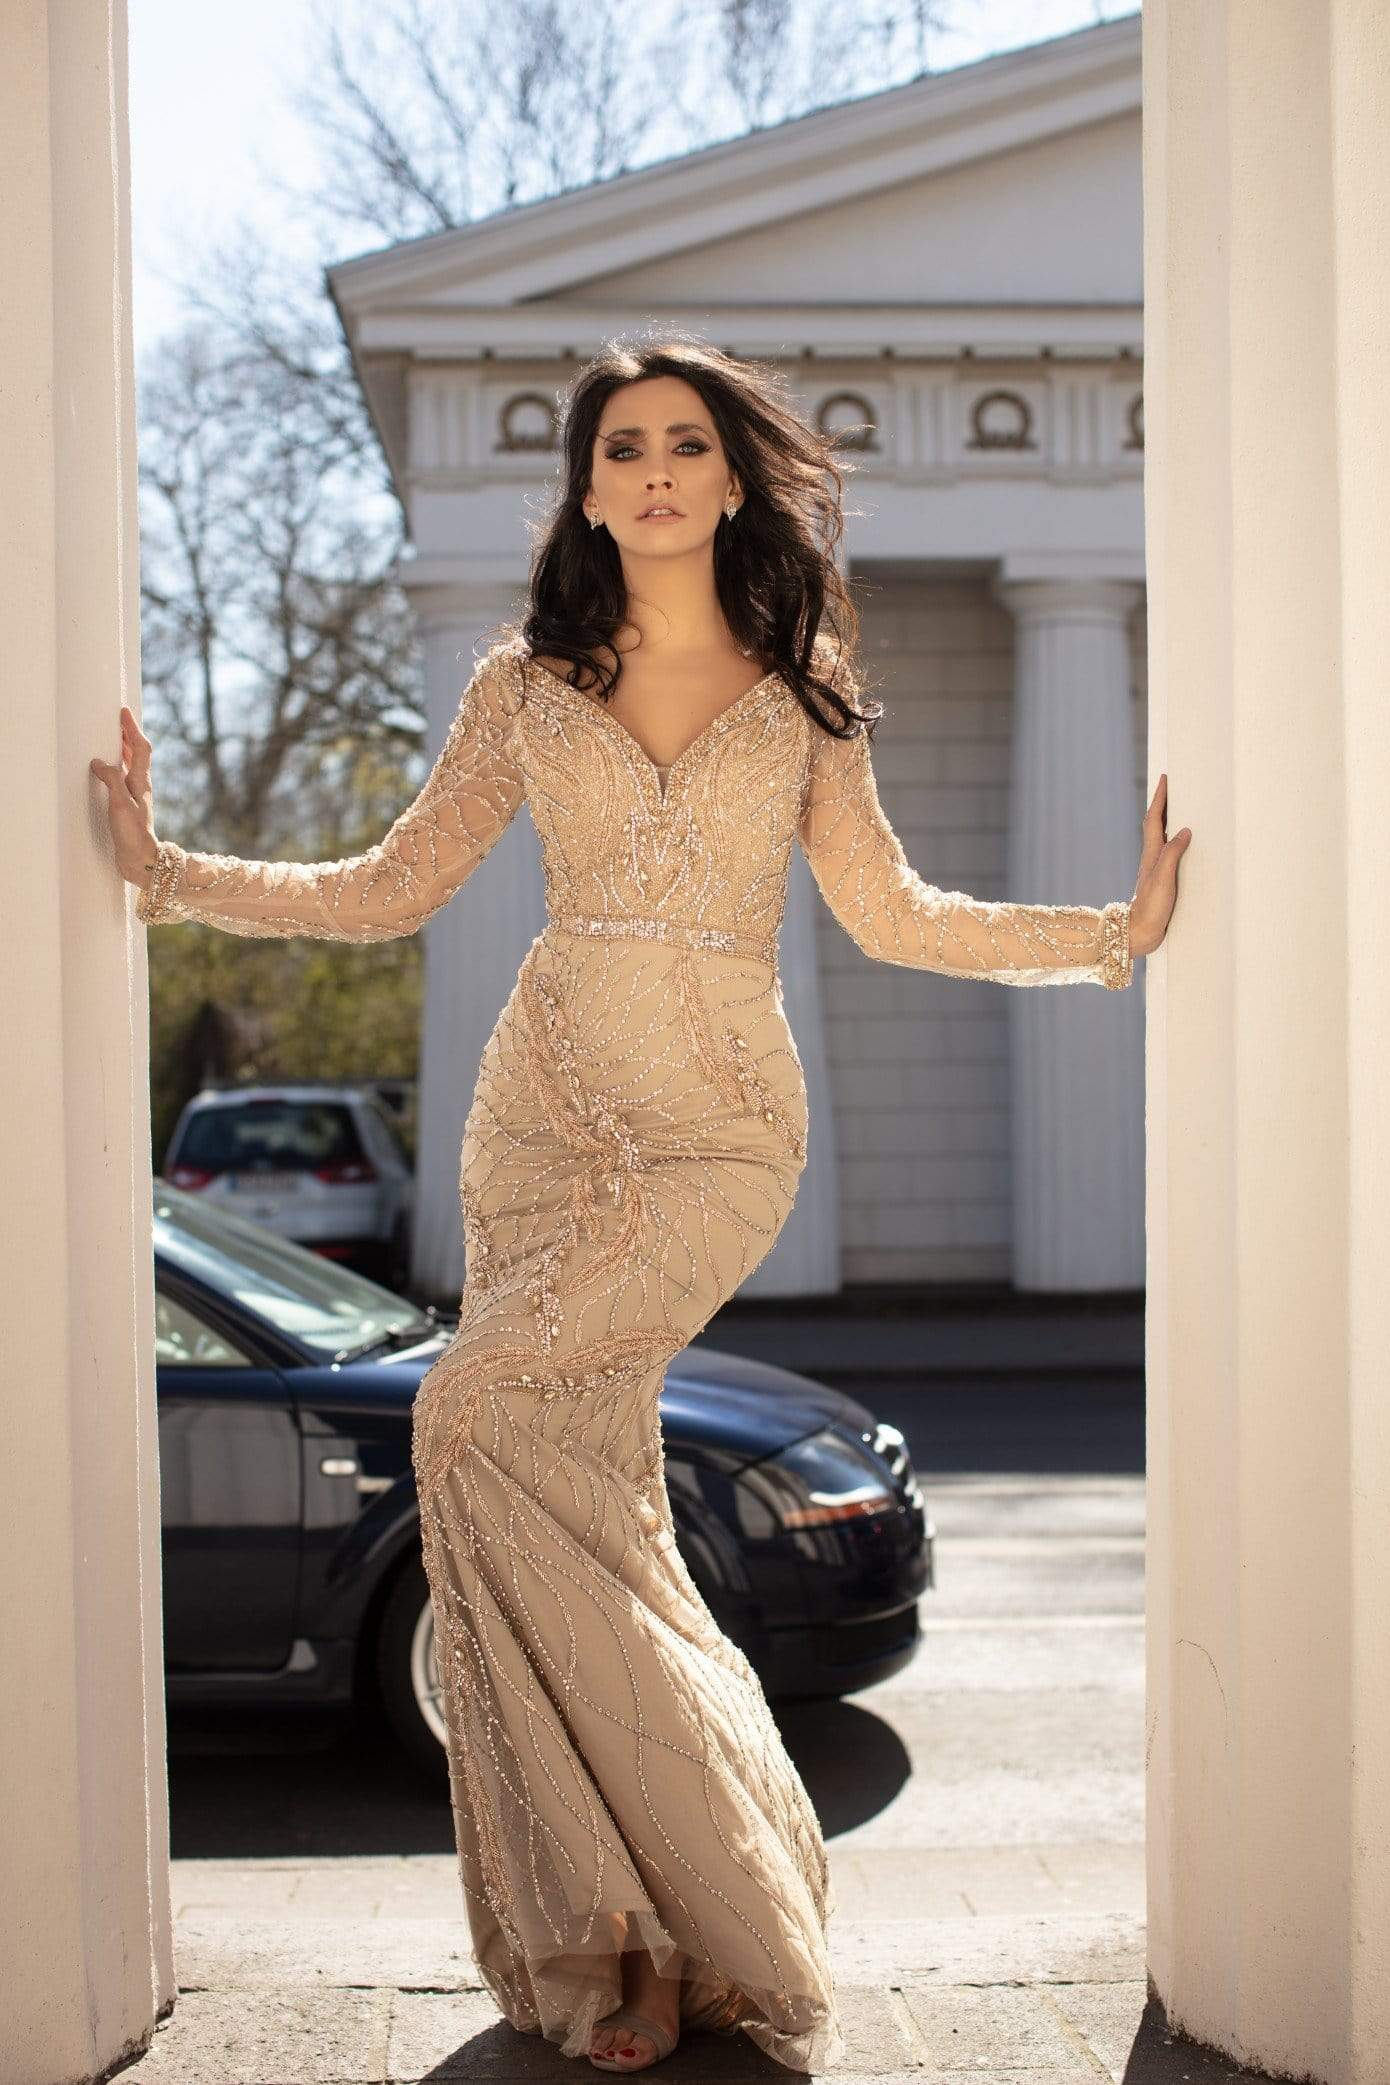 Chic and Holland - HF1476 Long Sleeve V-Neck Fully Beaded Sheath Gown from Chic and Holland